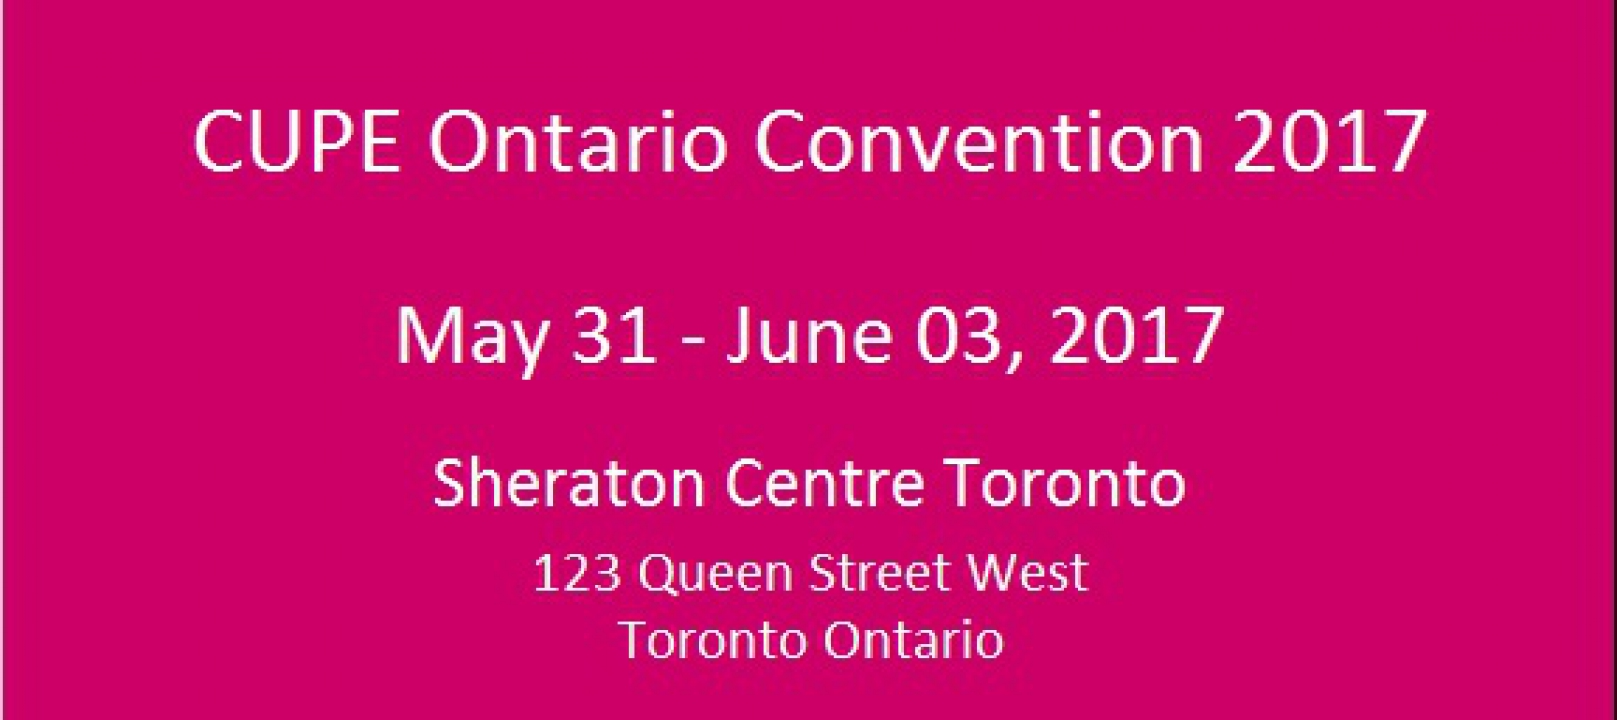 CUPE Ontario Convention 2017 (May 31 to June 03, 2017)